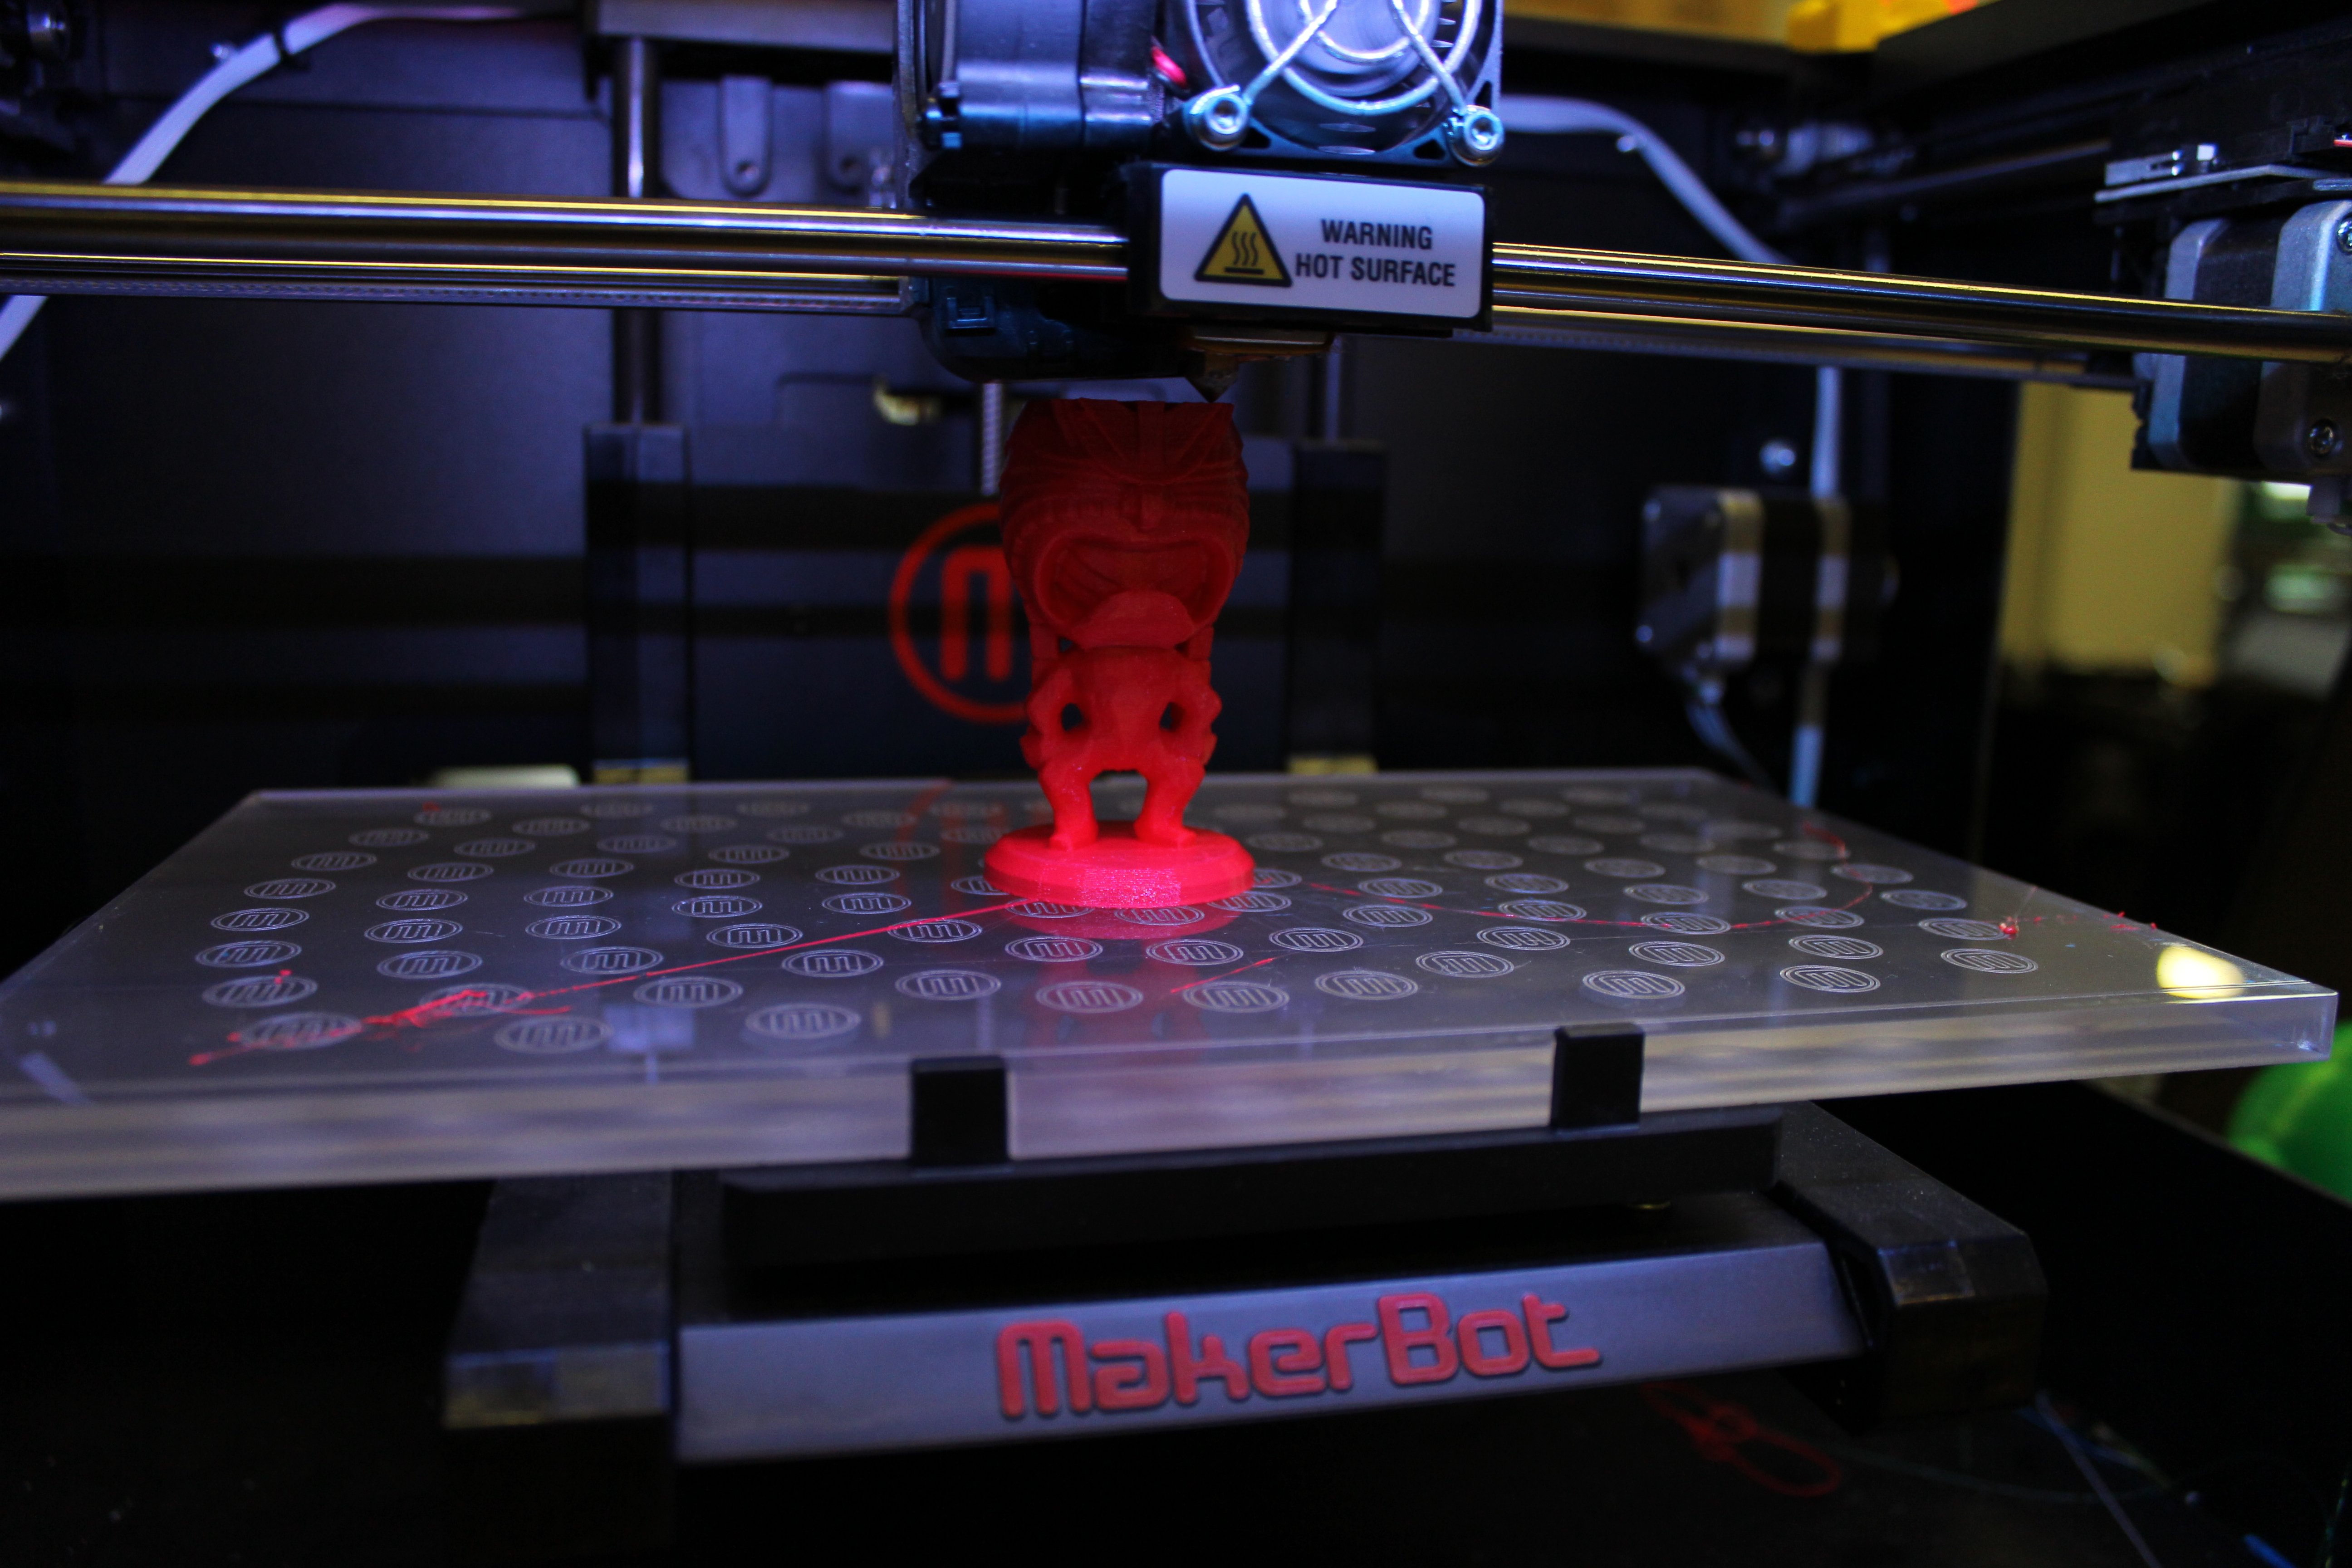 Workers produce desktop printers that can create small plastic prototypes.